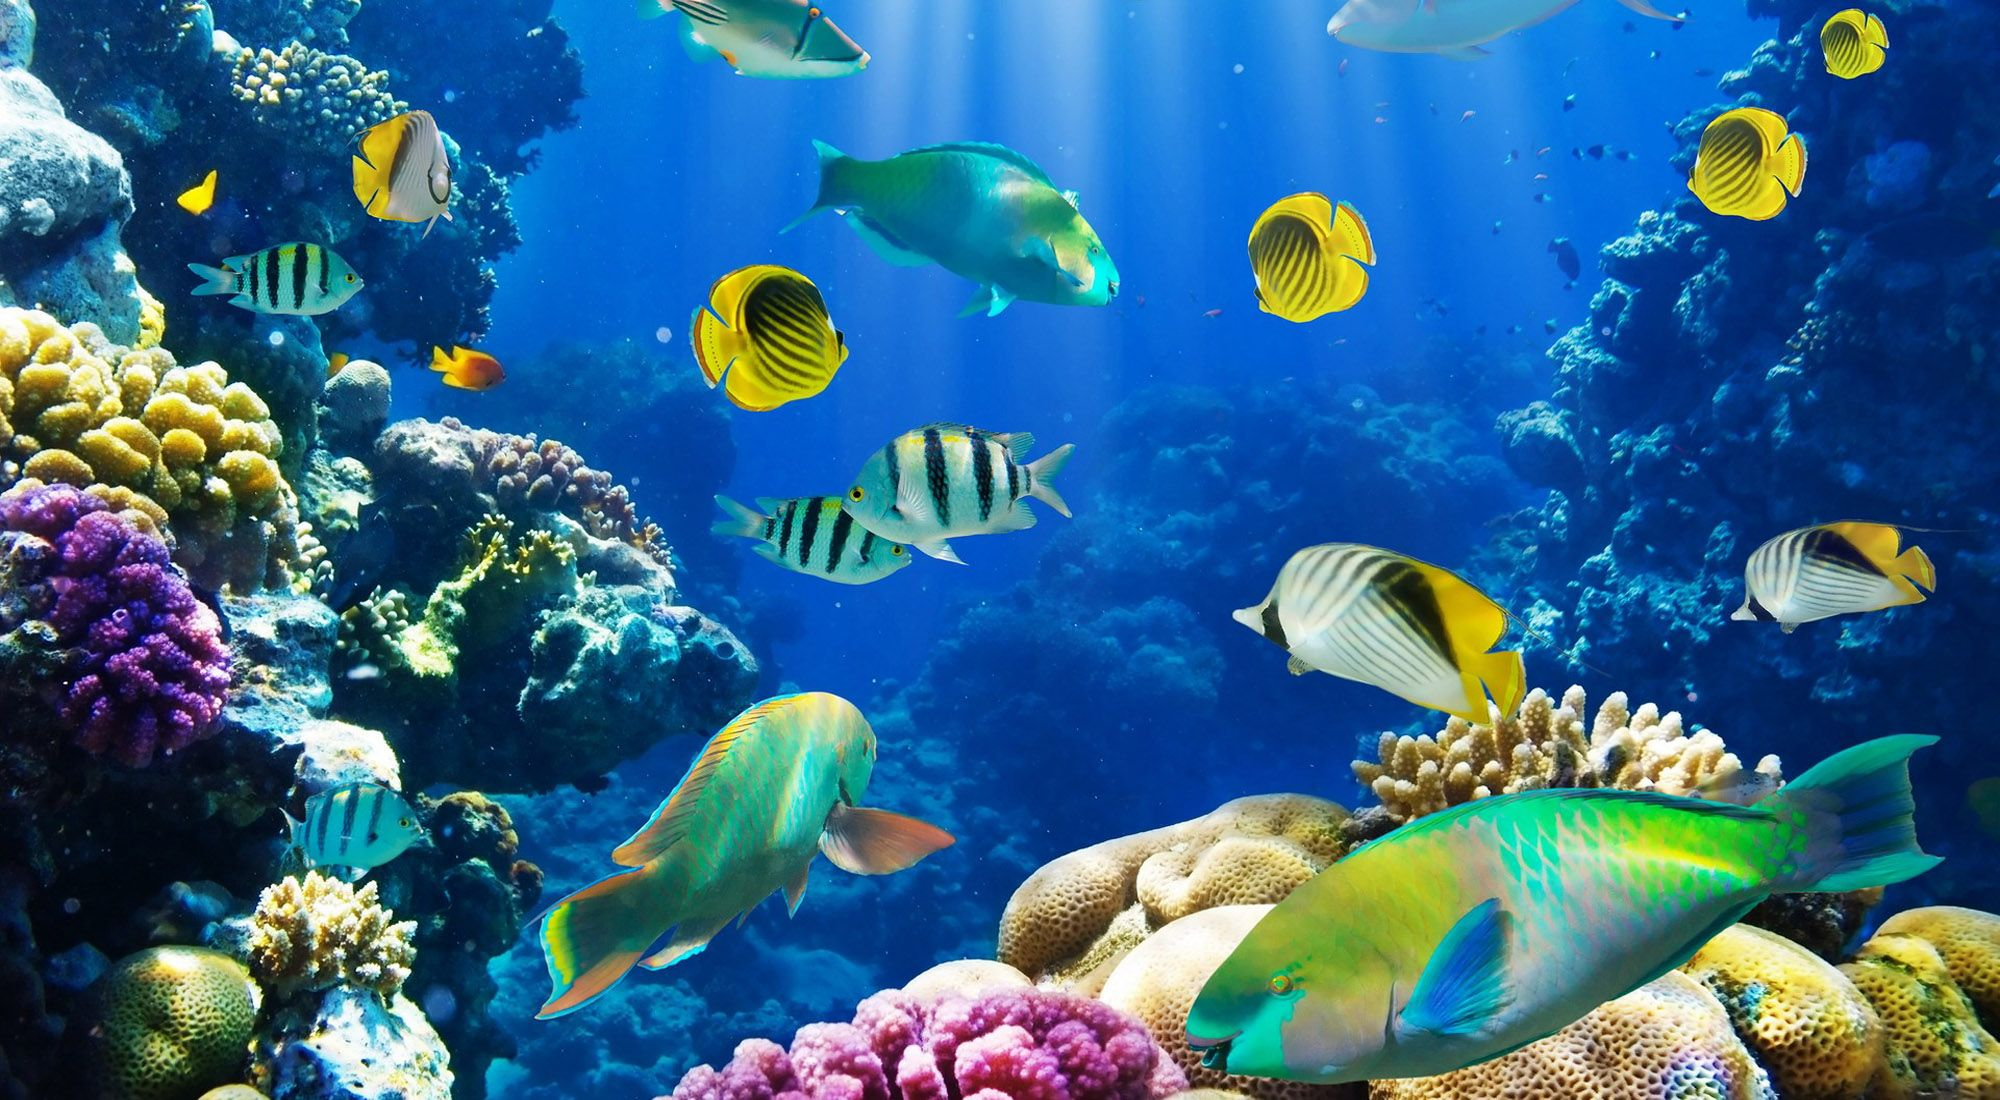 HD Fish Wallpapers: Find best latest HD Fish Wallpapers in HD for your PC desktop background ...